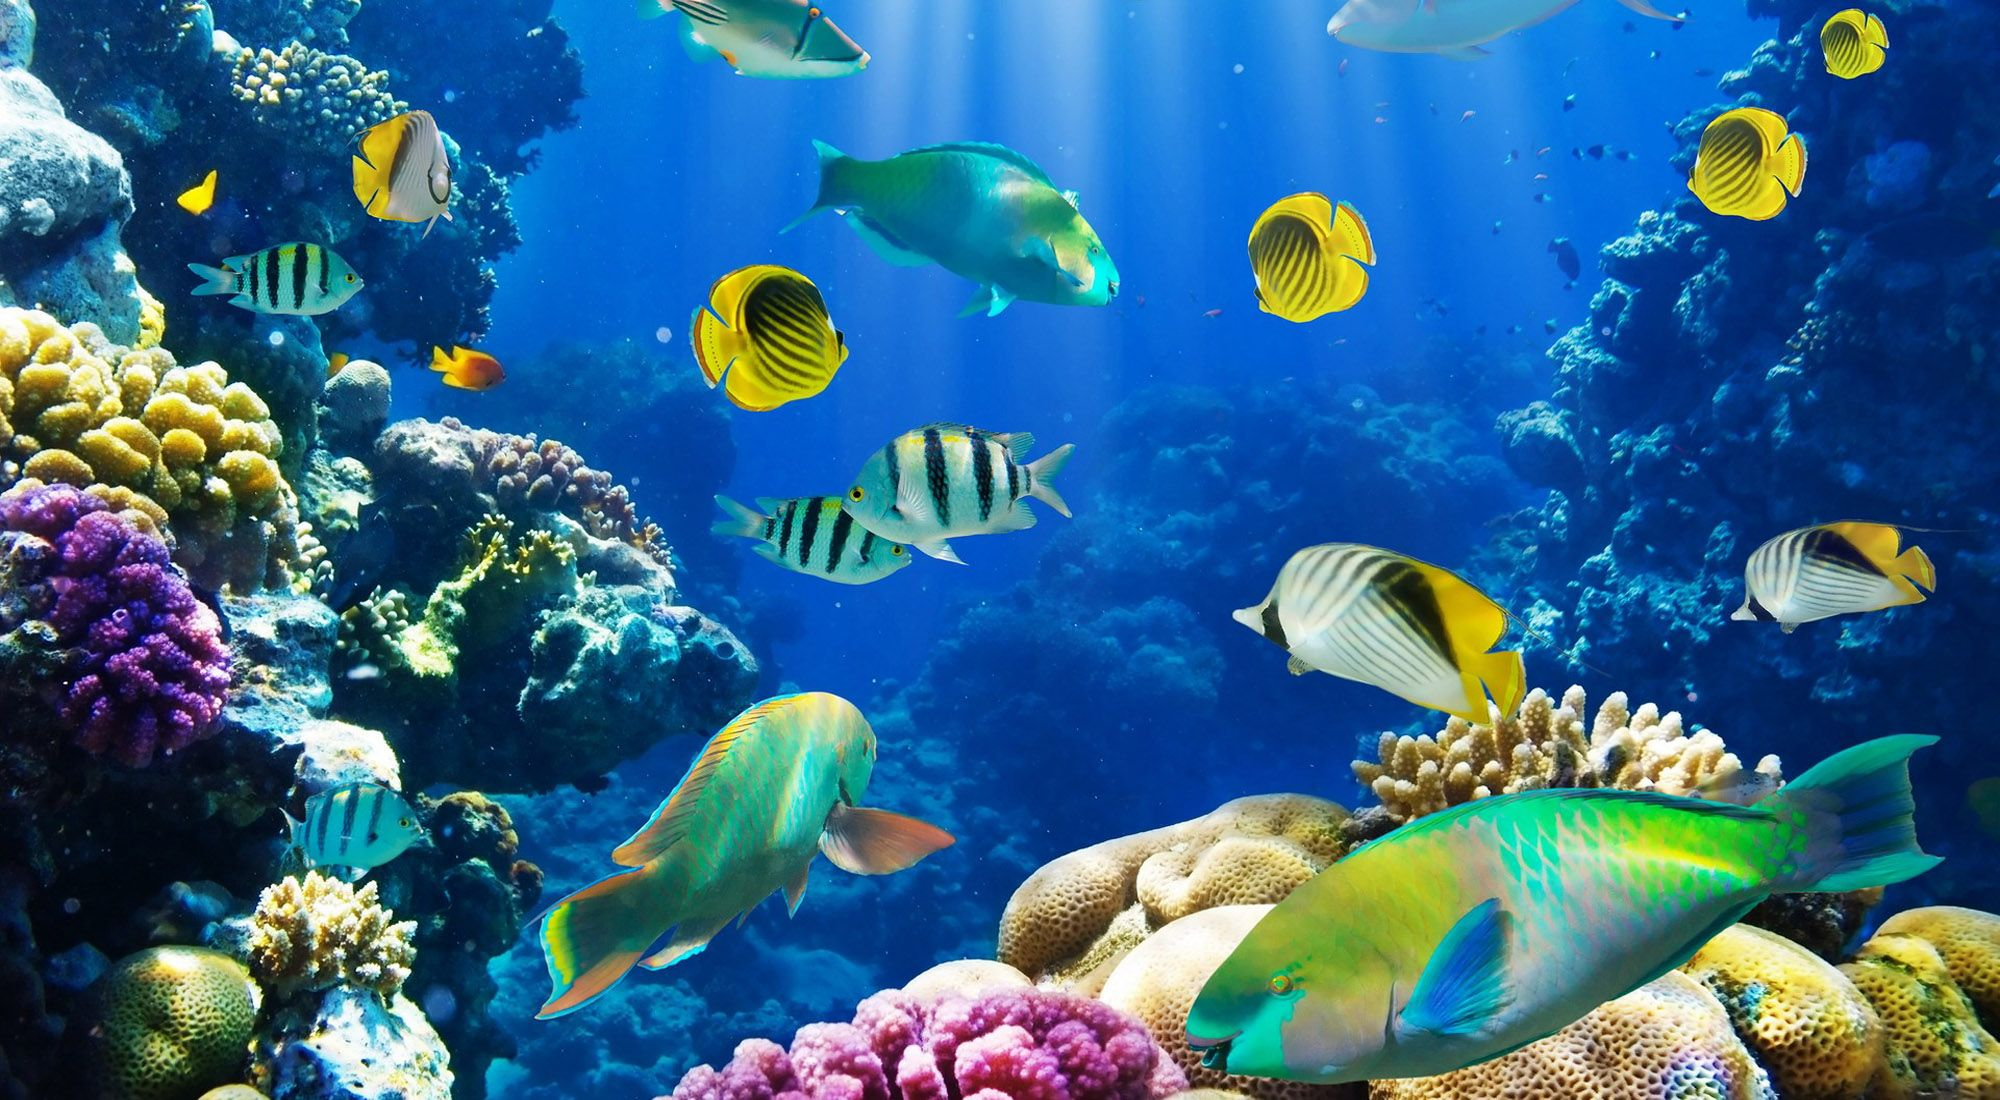 HD Fish Wallpapers: Find best latest HD Fish Wallpapers in HD for your PC desktop background ...